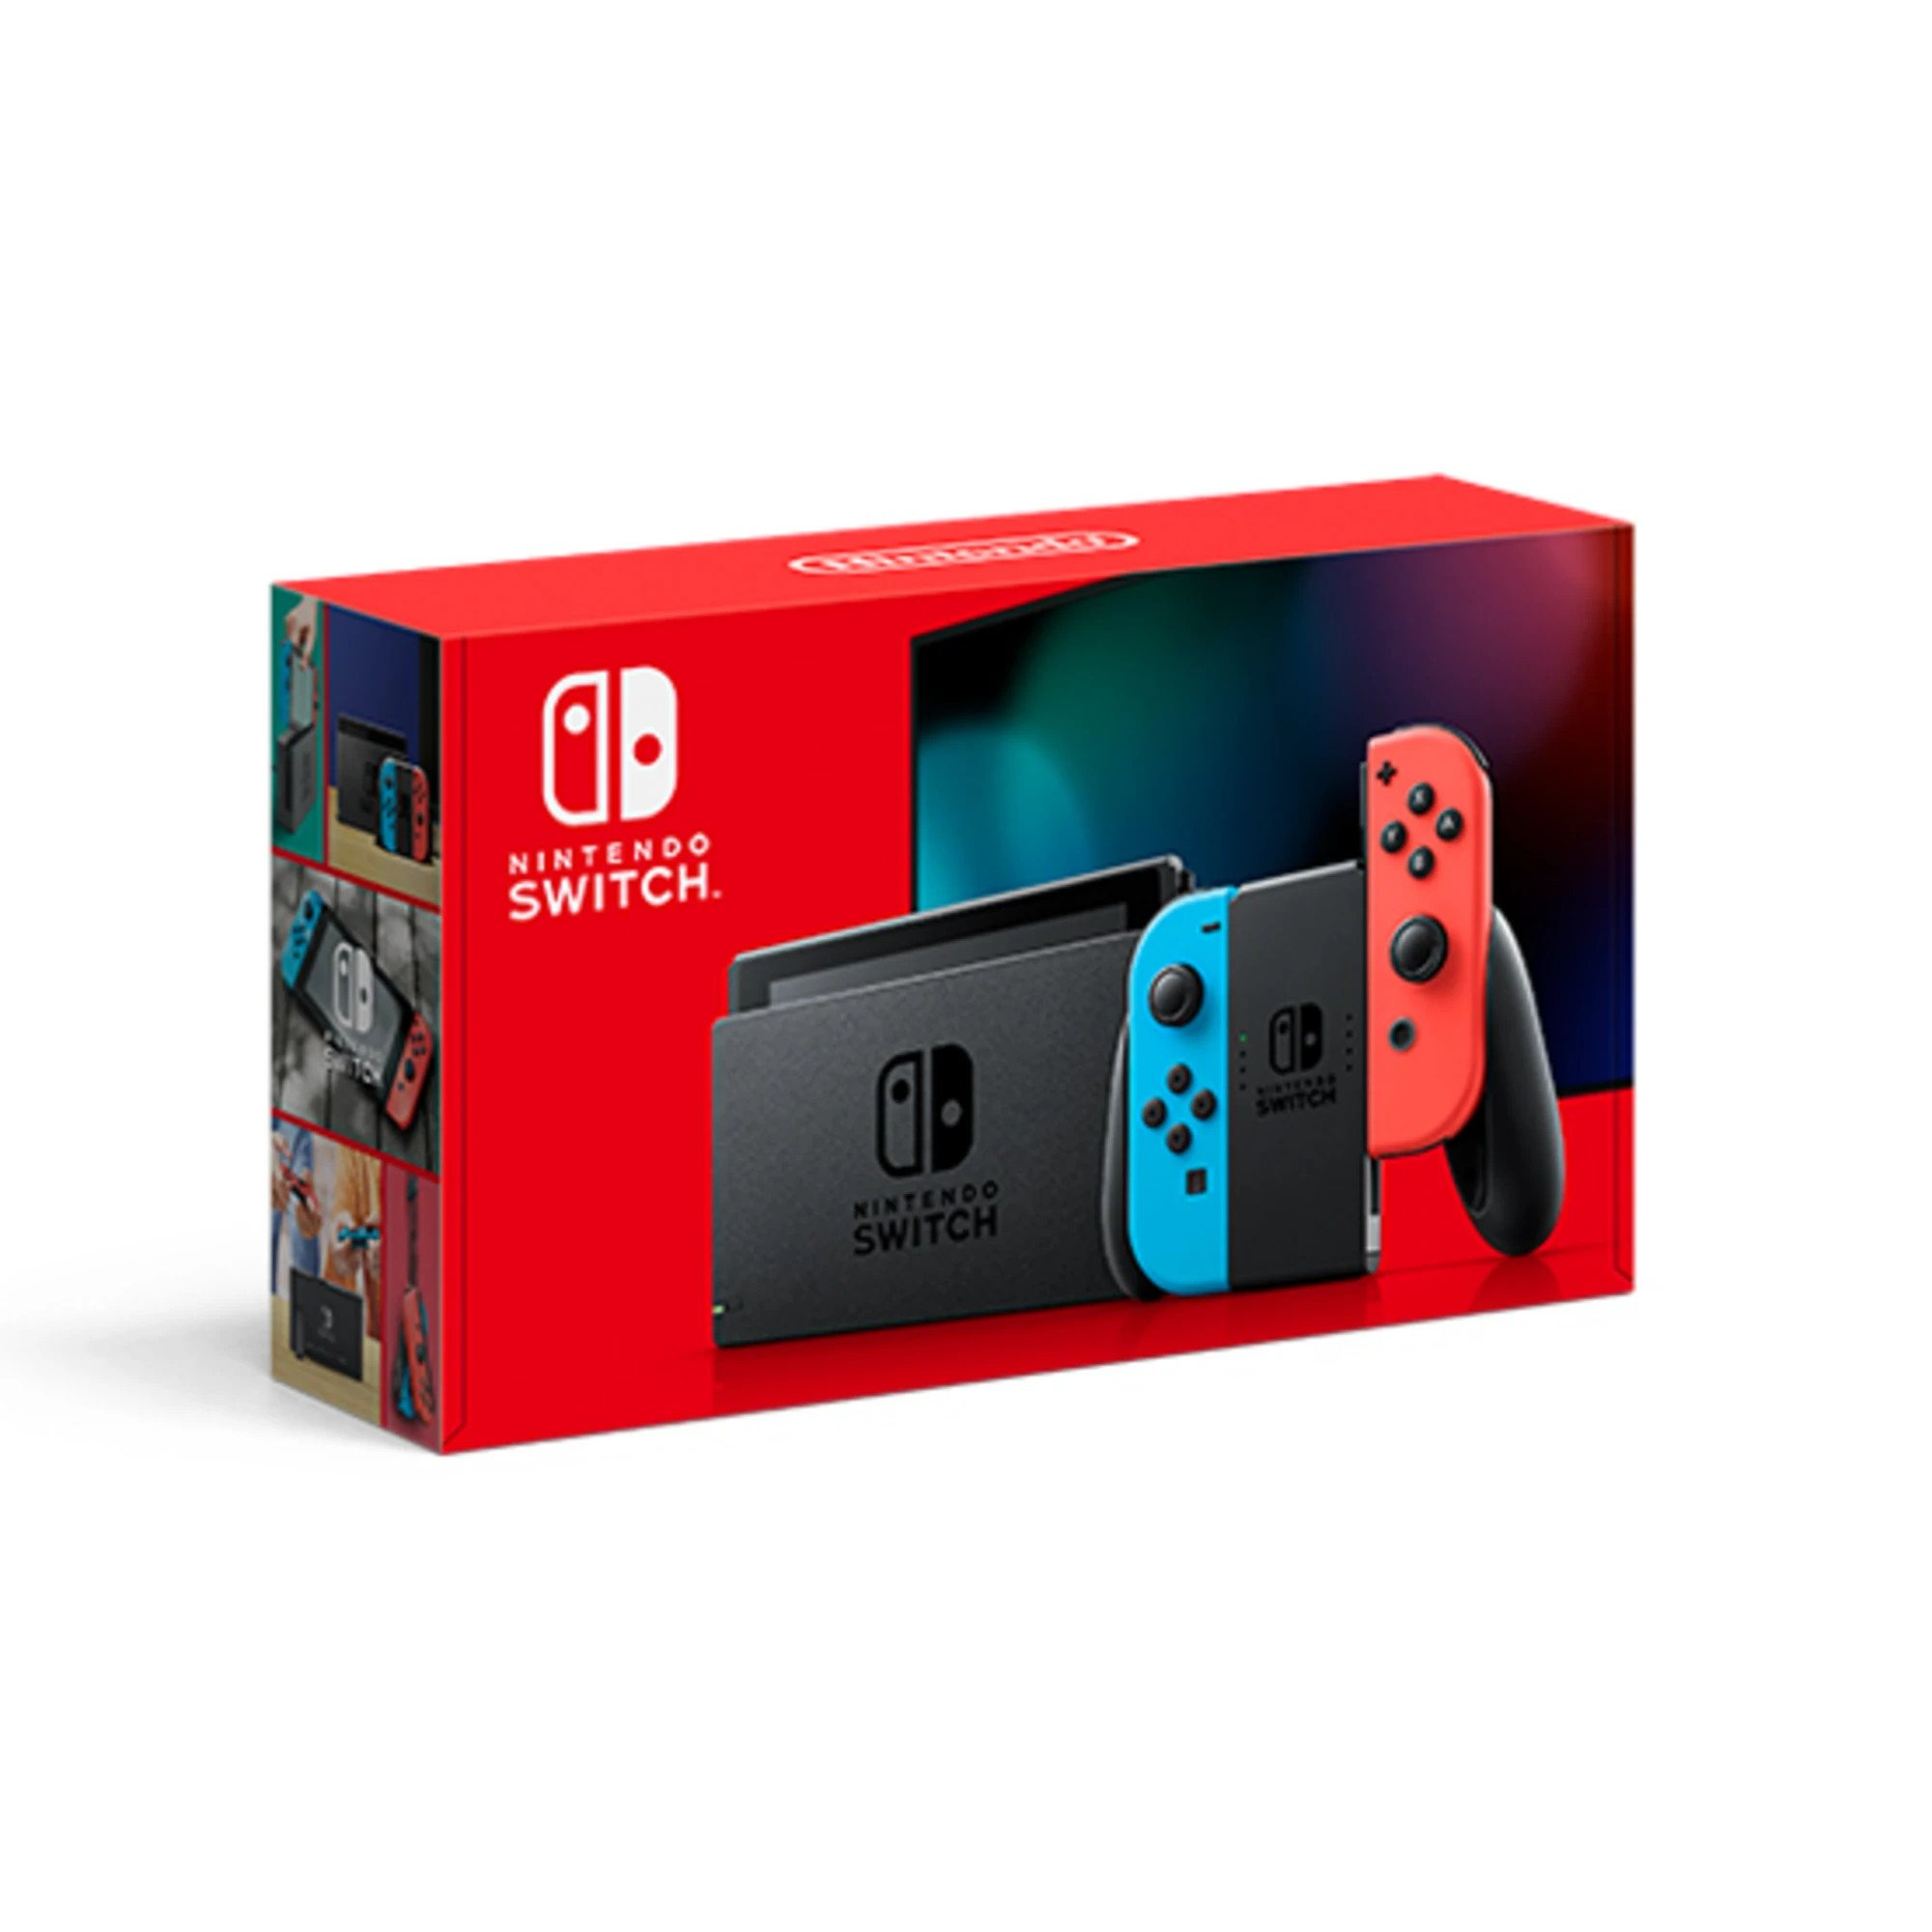 Nintendo Switch 1.1 with Neon Red & Blue Joy-Con Controllers - Neon